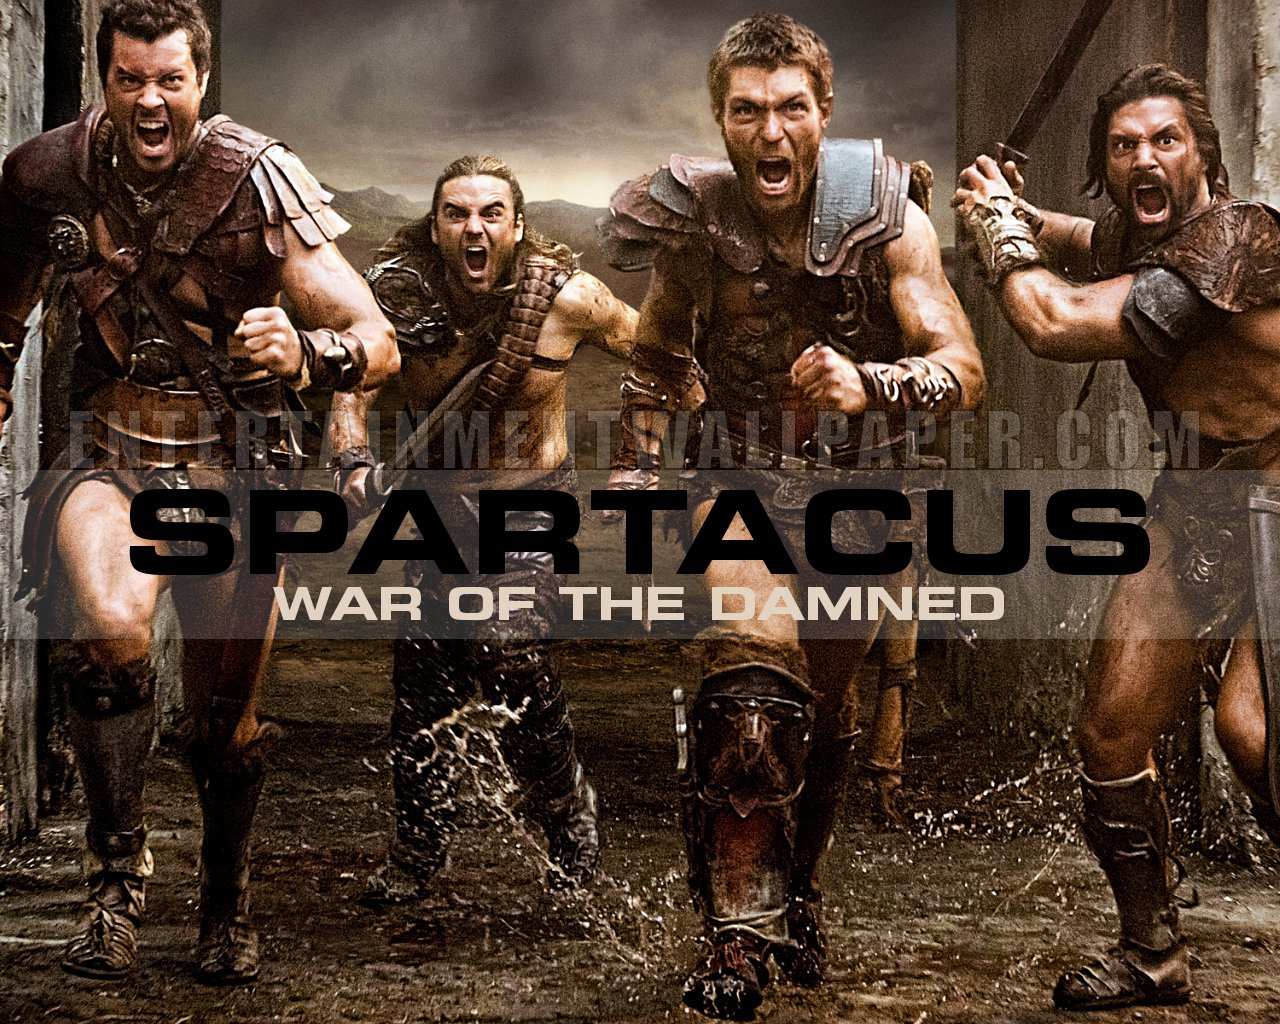 http://1.bp.blogspot.com/-x6jj_qO-uwo/UQdNW8iah9I/AAAAAAAAIlQ/CNrNf-i3_Ns/s1600/tv-spartacus-war-of-the-damned02.jpg